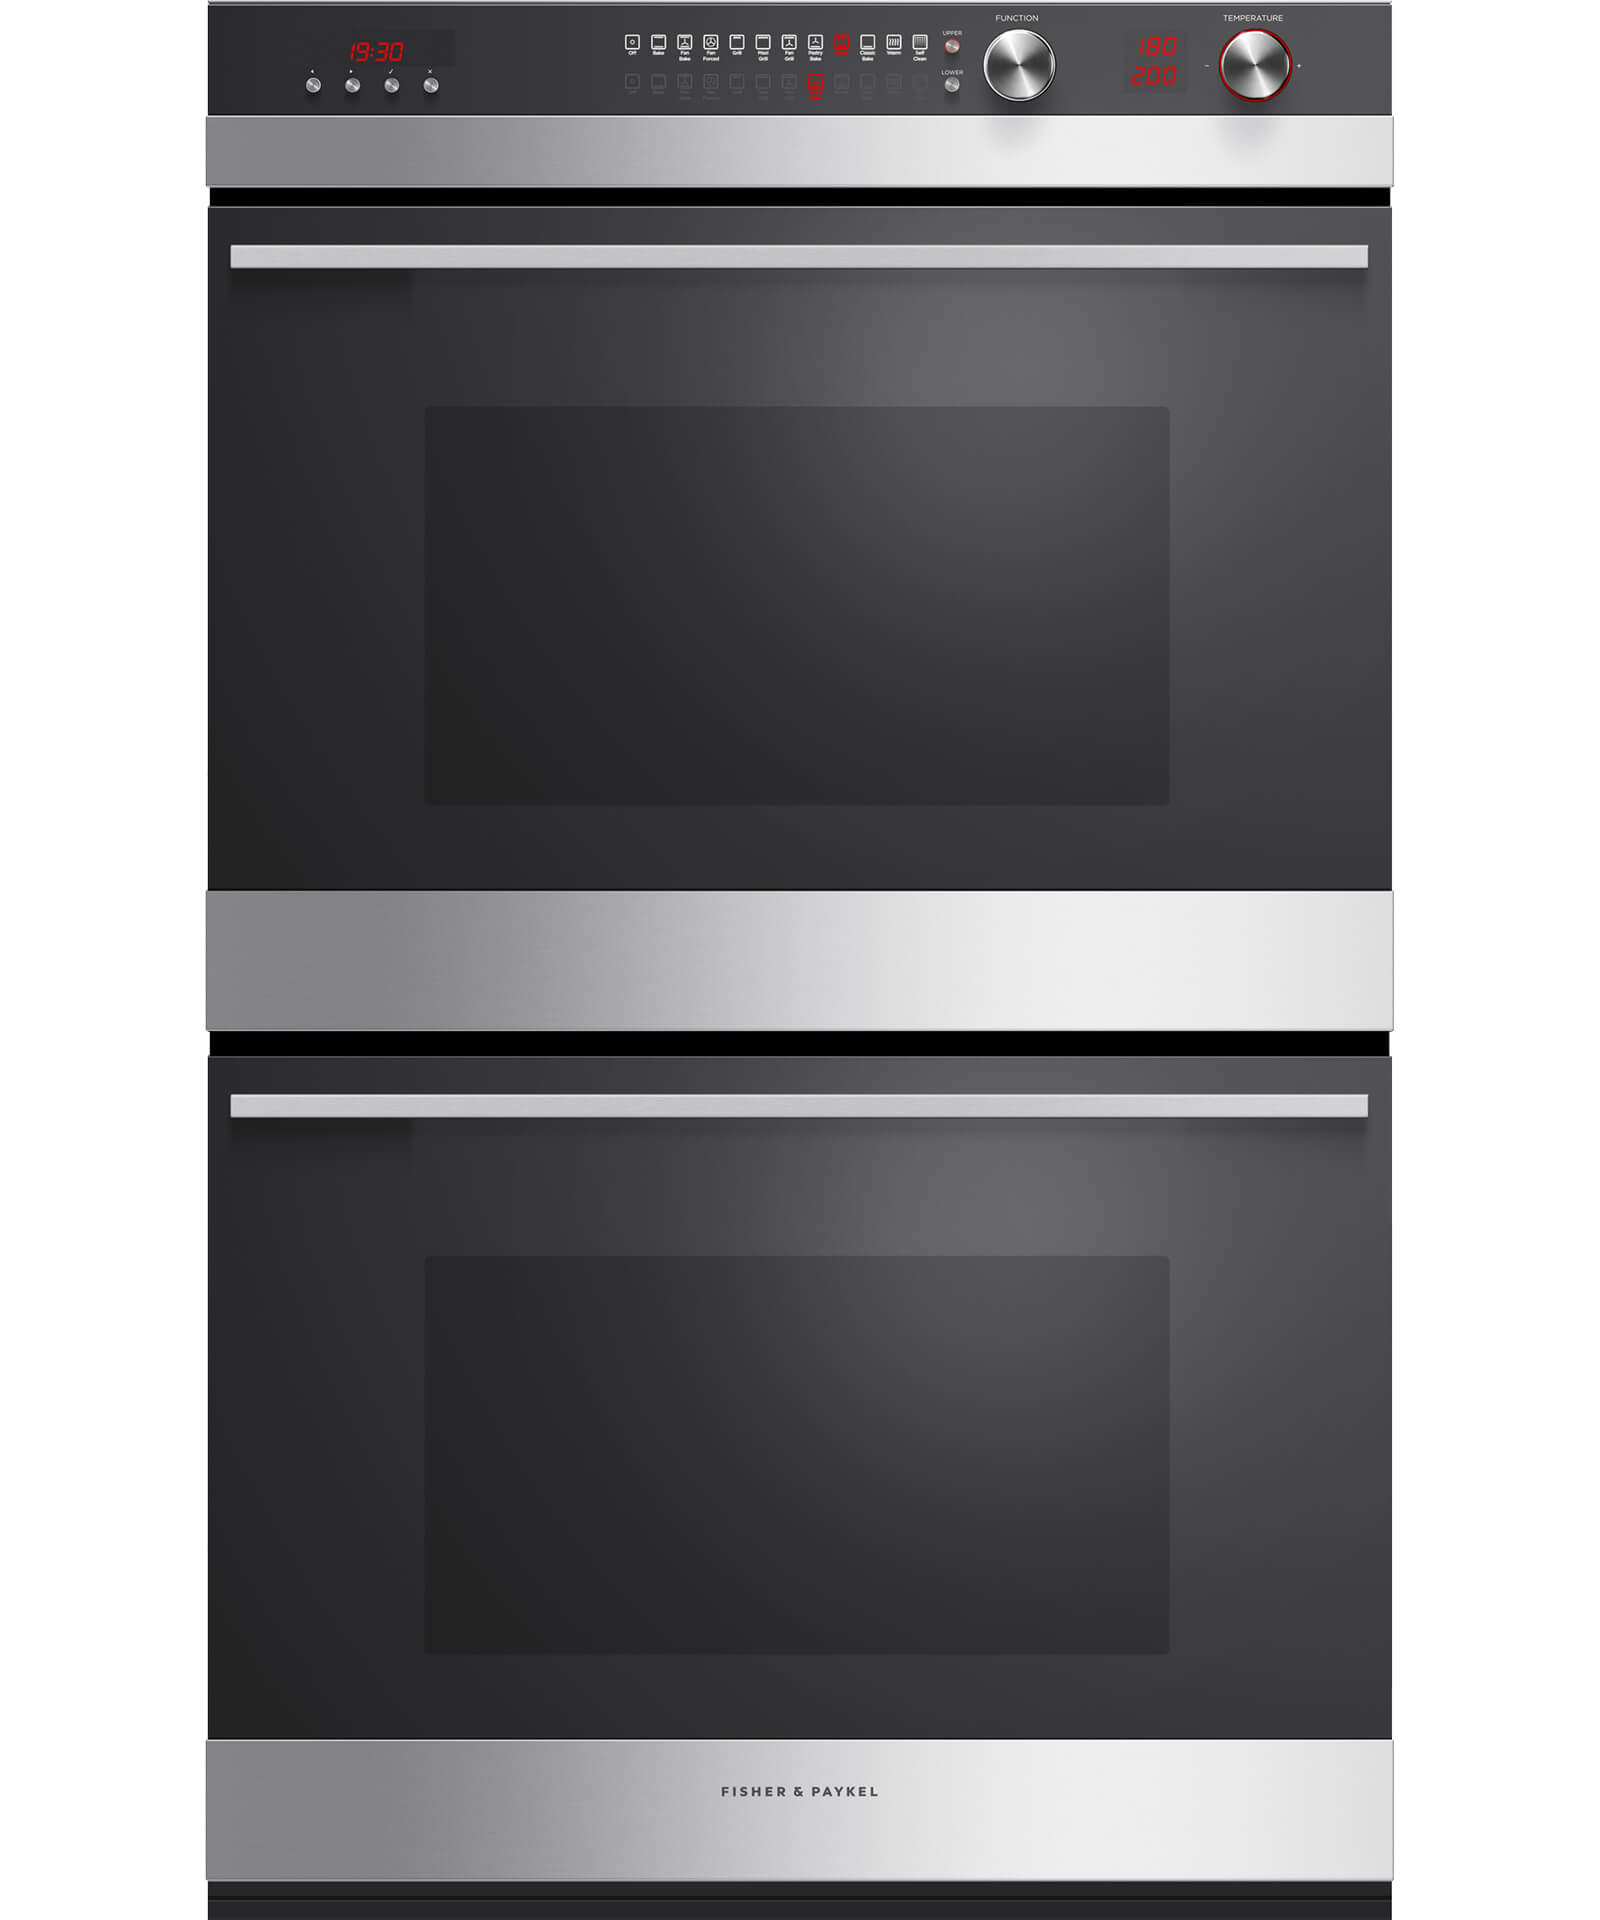 ob76ddepx3 fisher and paykel function double pyrolytic built in oven rh fisherpaykel com